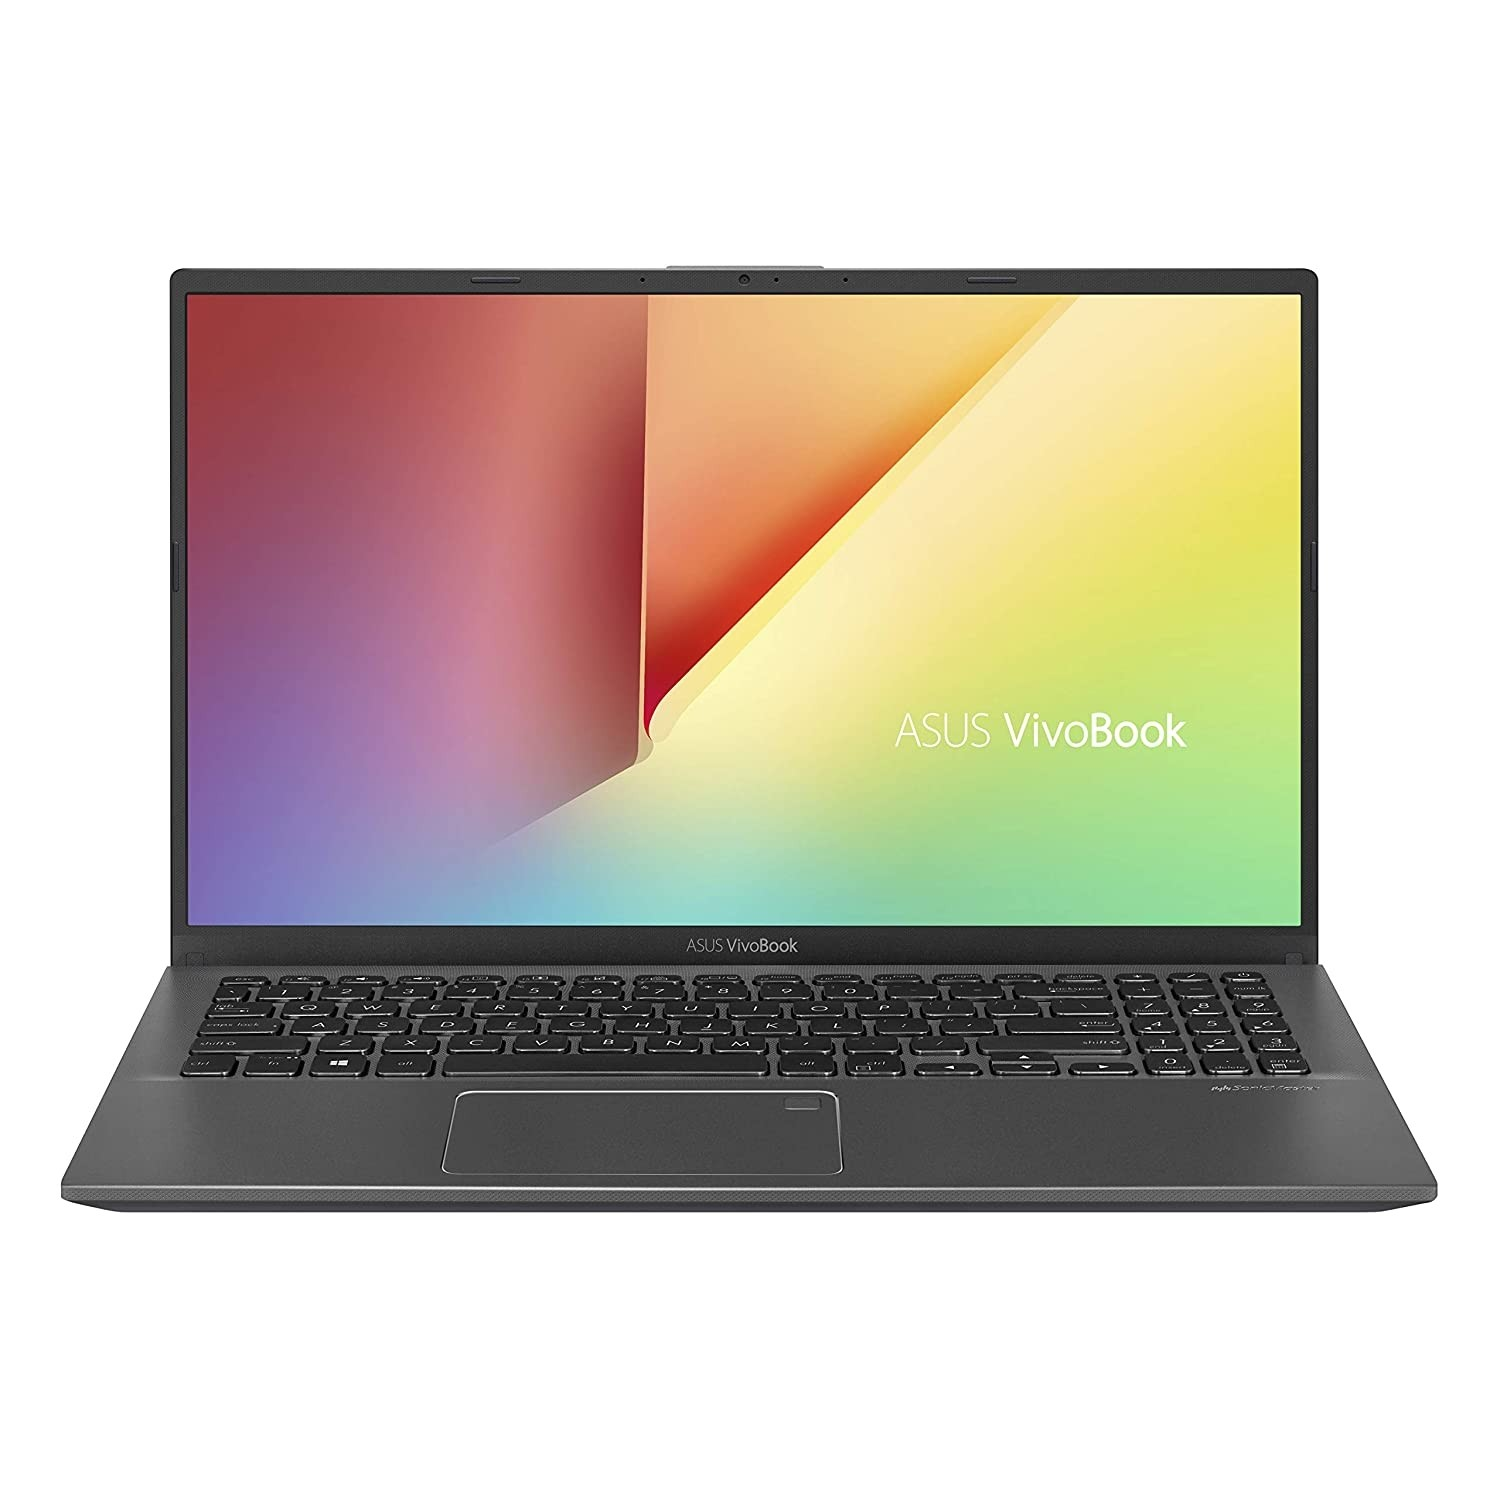 Refurbished laptops & desktops - Asus Vivobook 15 Intel Core I5-1035G1 10Th Gen 15.6-Inch FHD Thin And Light Laptop (8GB RAM/1TB HDD + 256GB SSD/Windows 10/2GB Graphics)